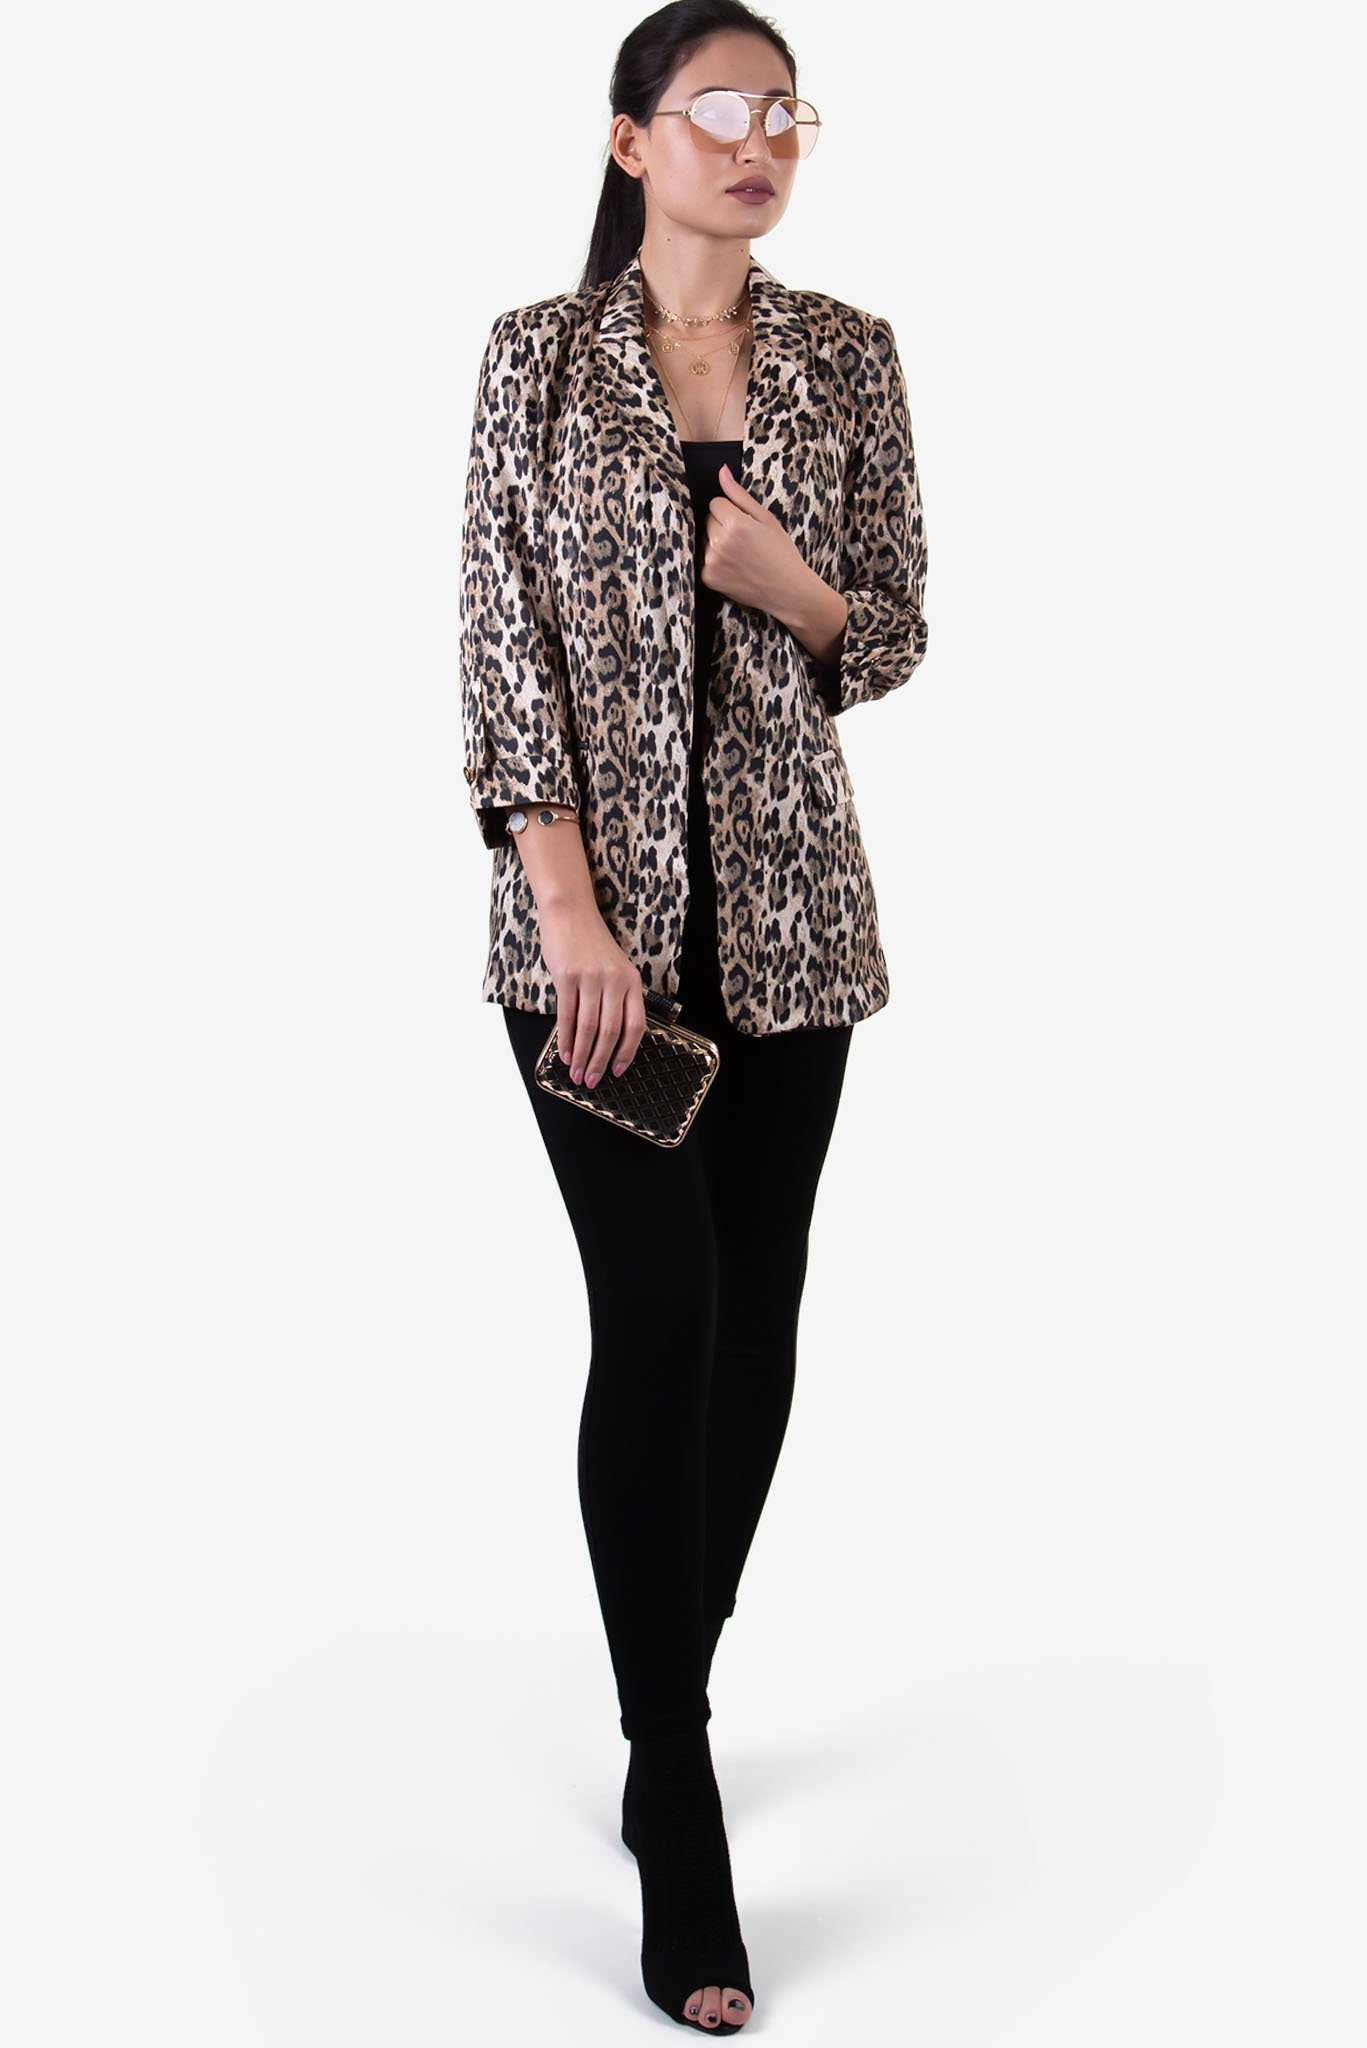 Blazer - Leopard Print | Raw Orange